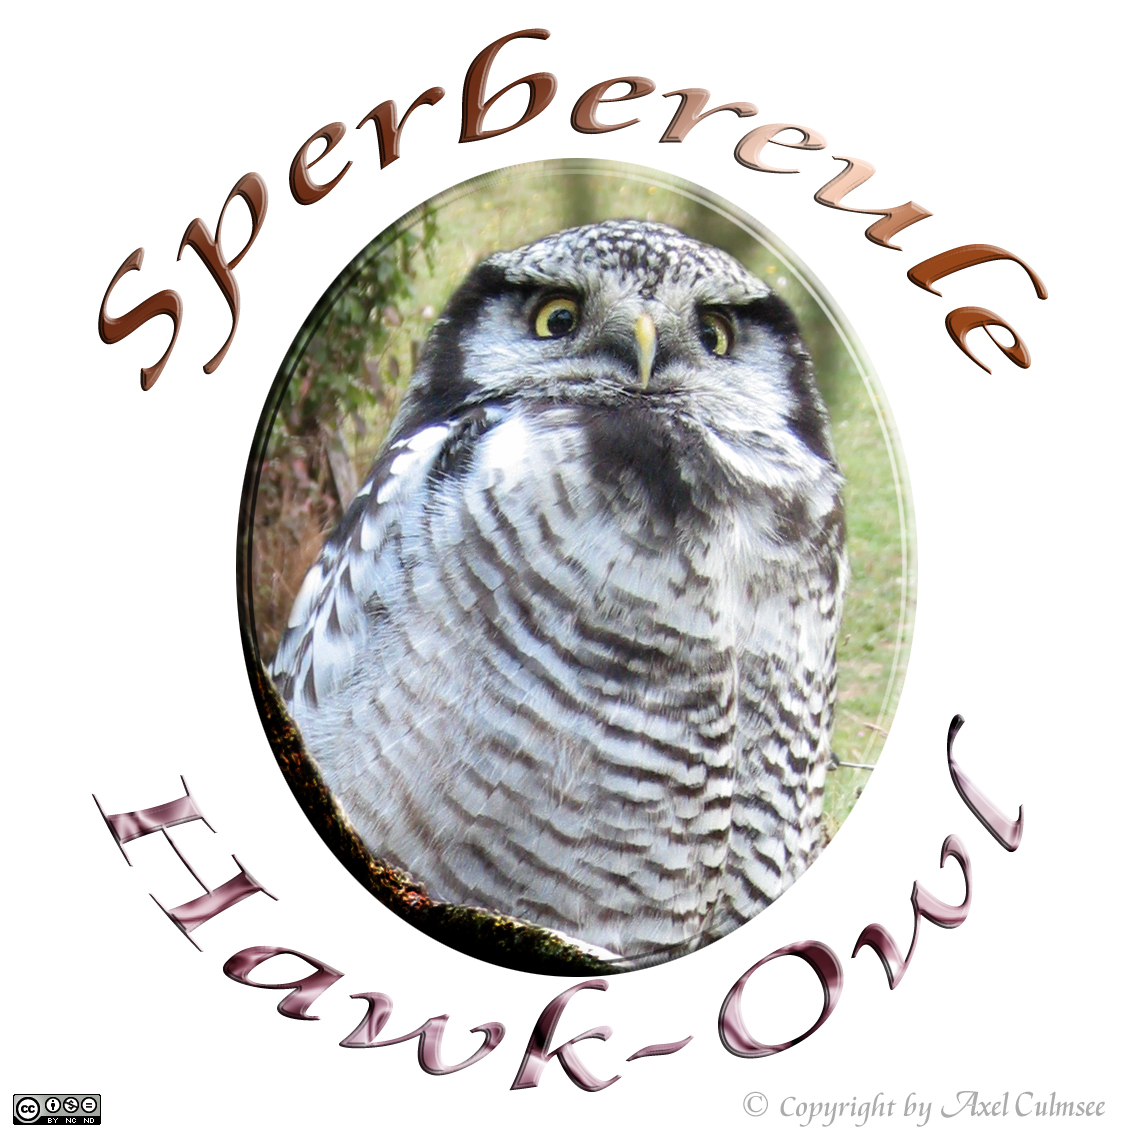 Northern hawk-owl, Sperbereule